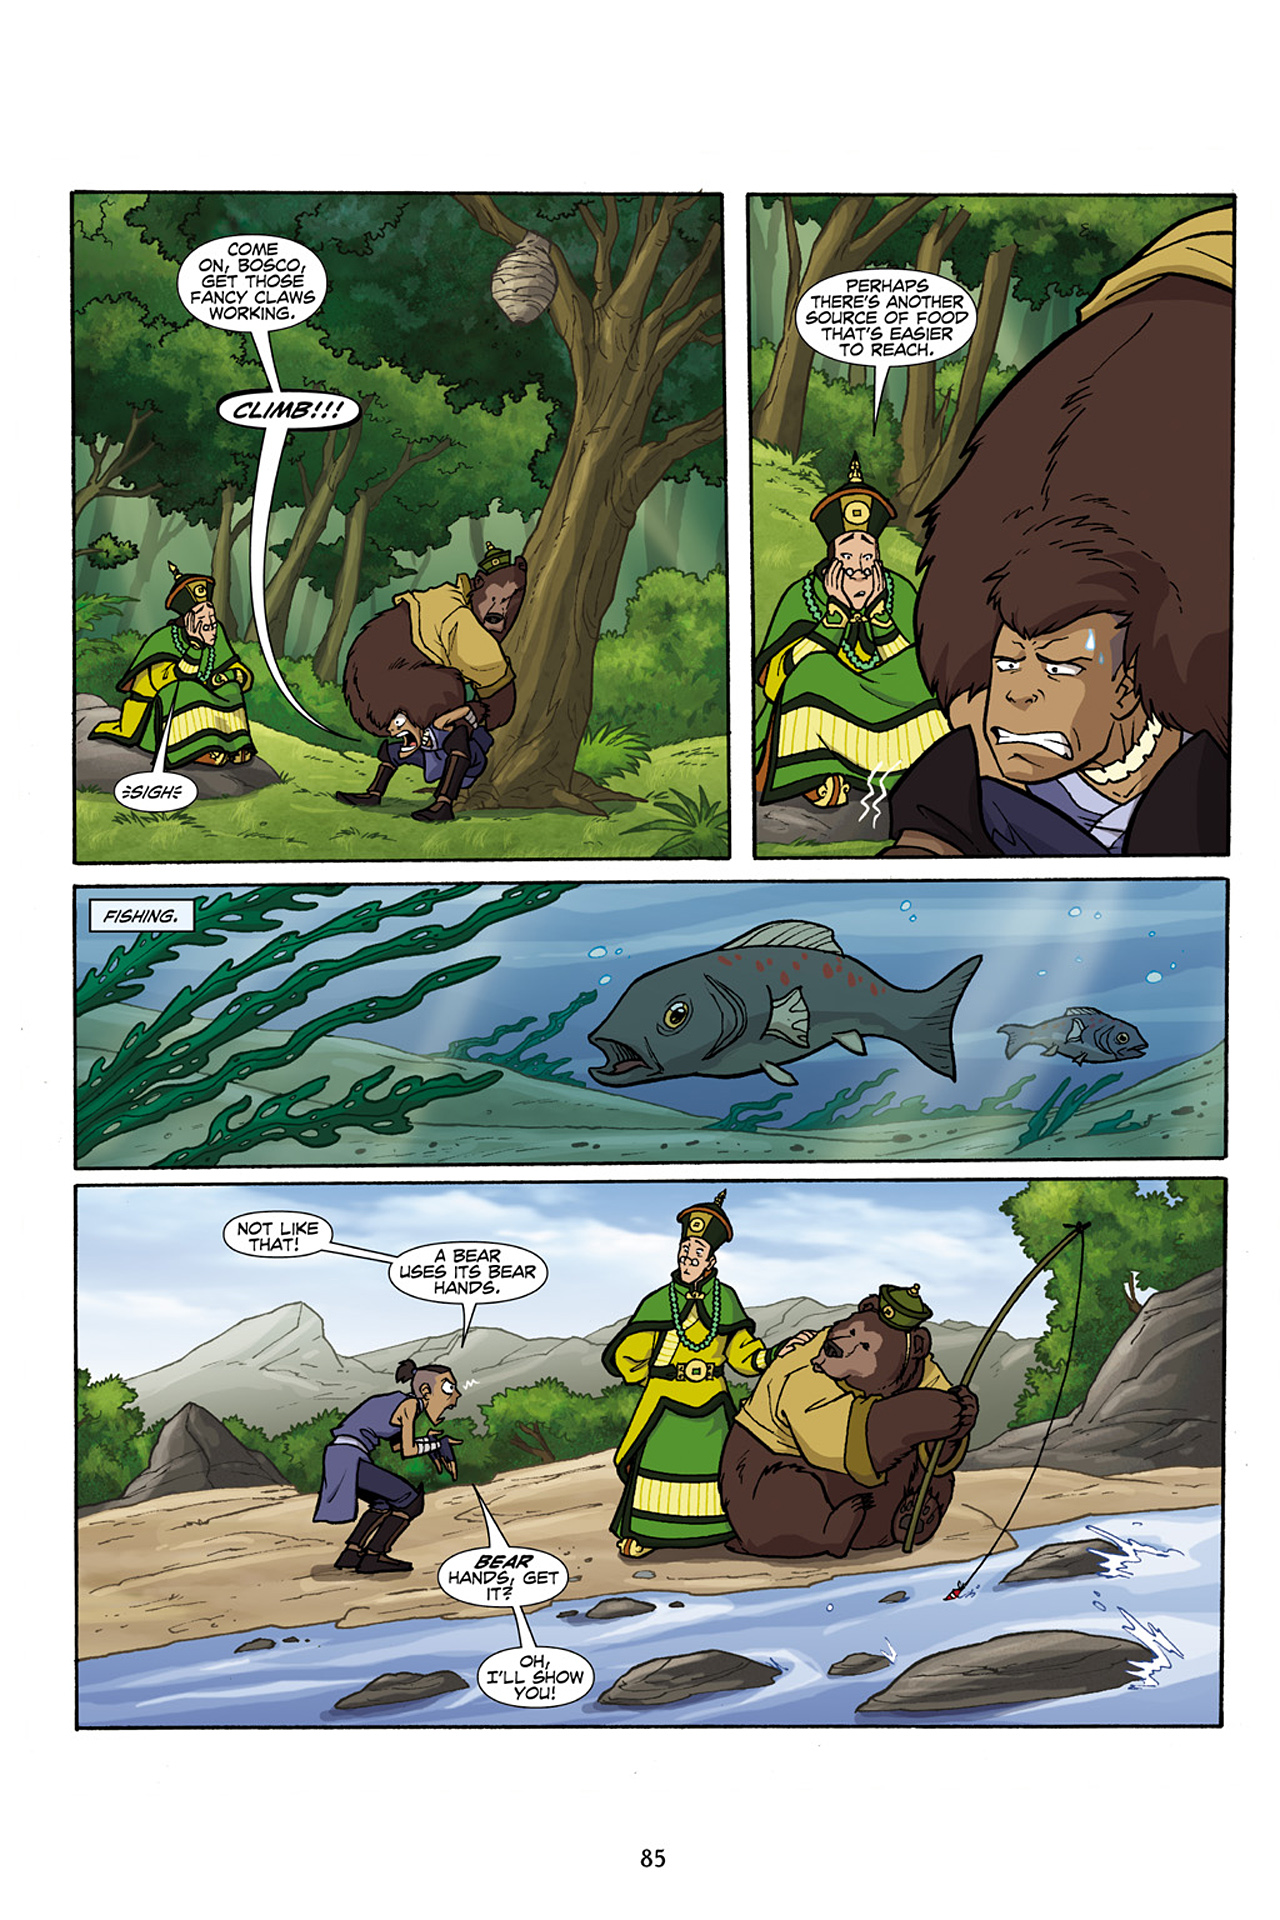 Nickelodeon Avatar: The Last Airbender - The Lost Adventures chap full pic 86